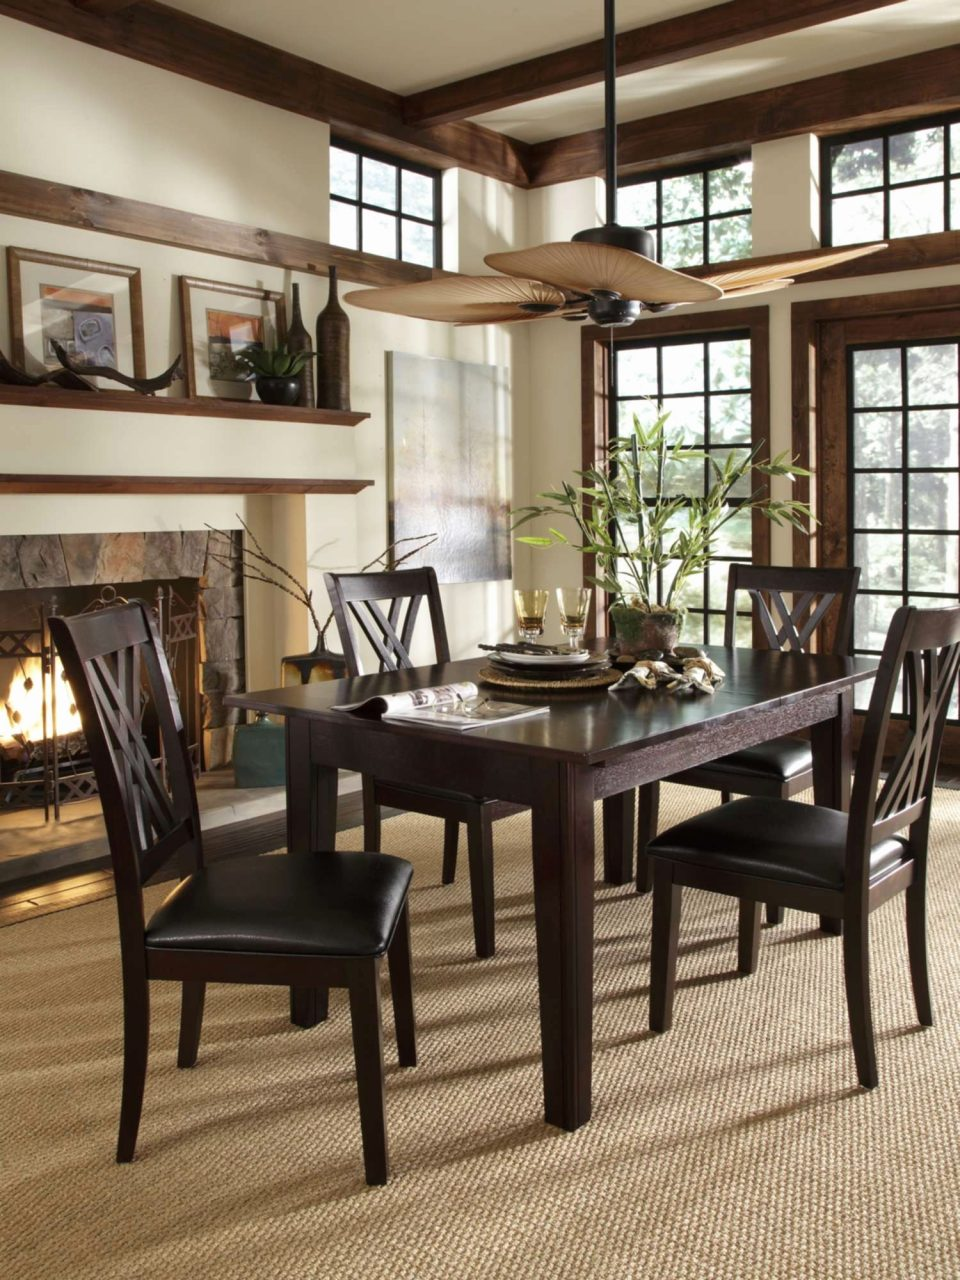 Palm Ceiling Fan Beautiful Dining Room Tropical Ceiling Fan With